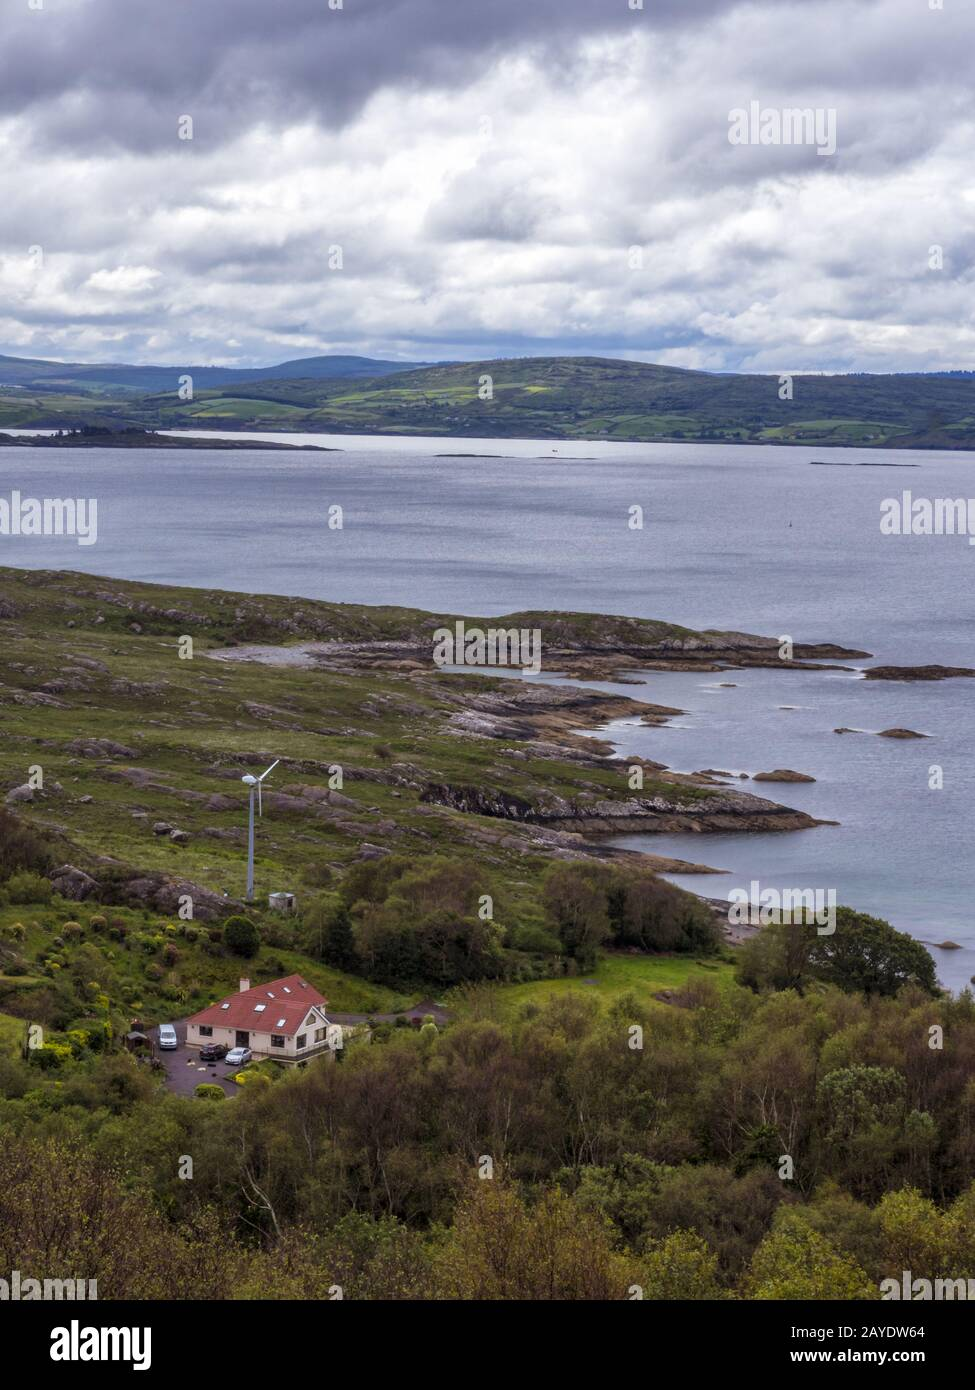 BANTRY HOUSE B&B - Updated 2020 Prices & Reviews